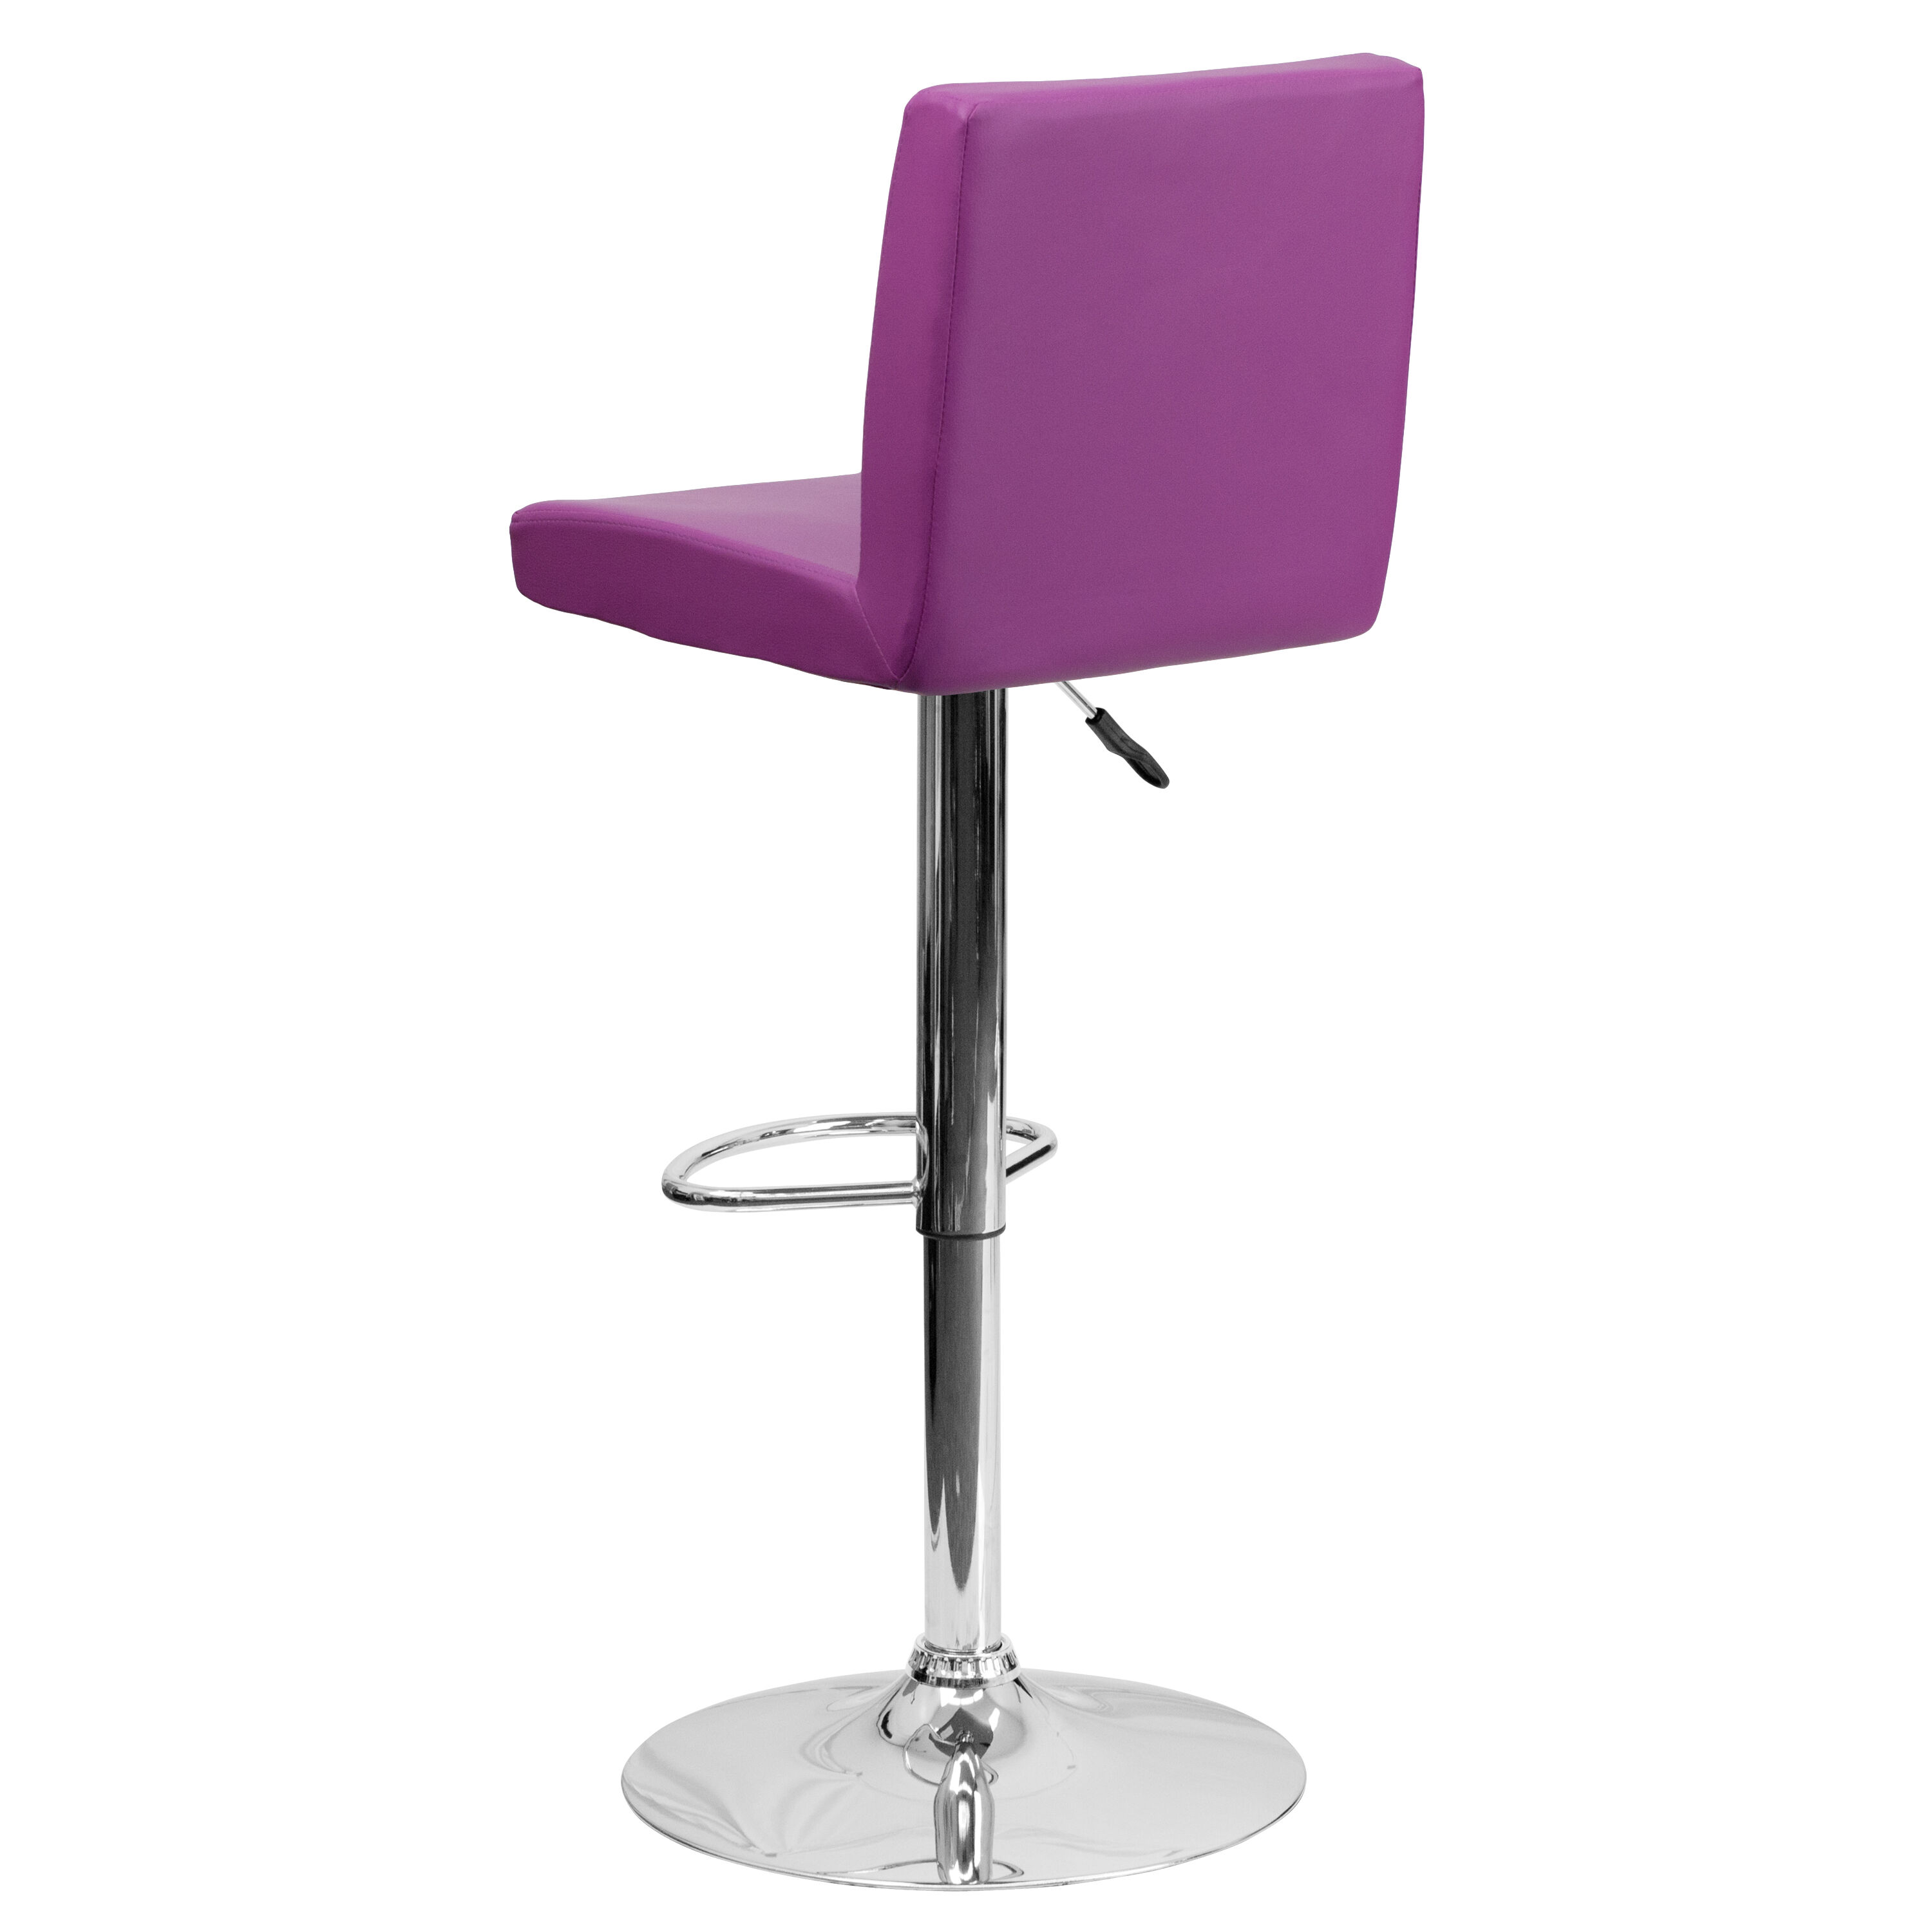 Superieur Our Contemporary Purple Vinyl Adjustable Height Barstool With Chrome Base  Is On Sale Now.